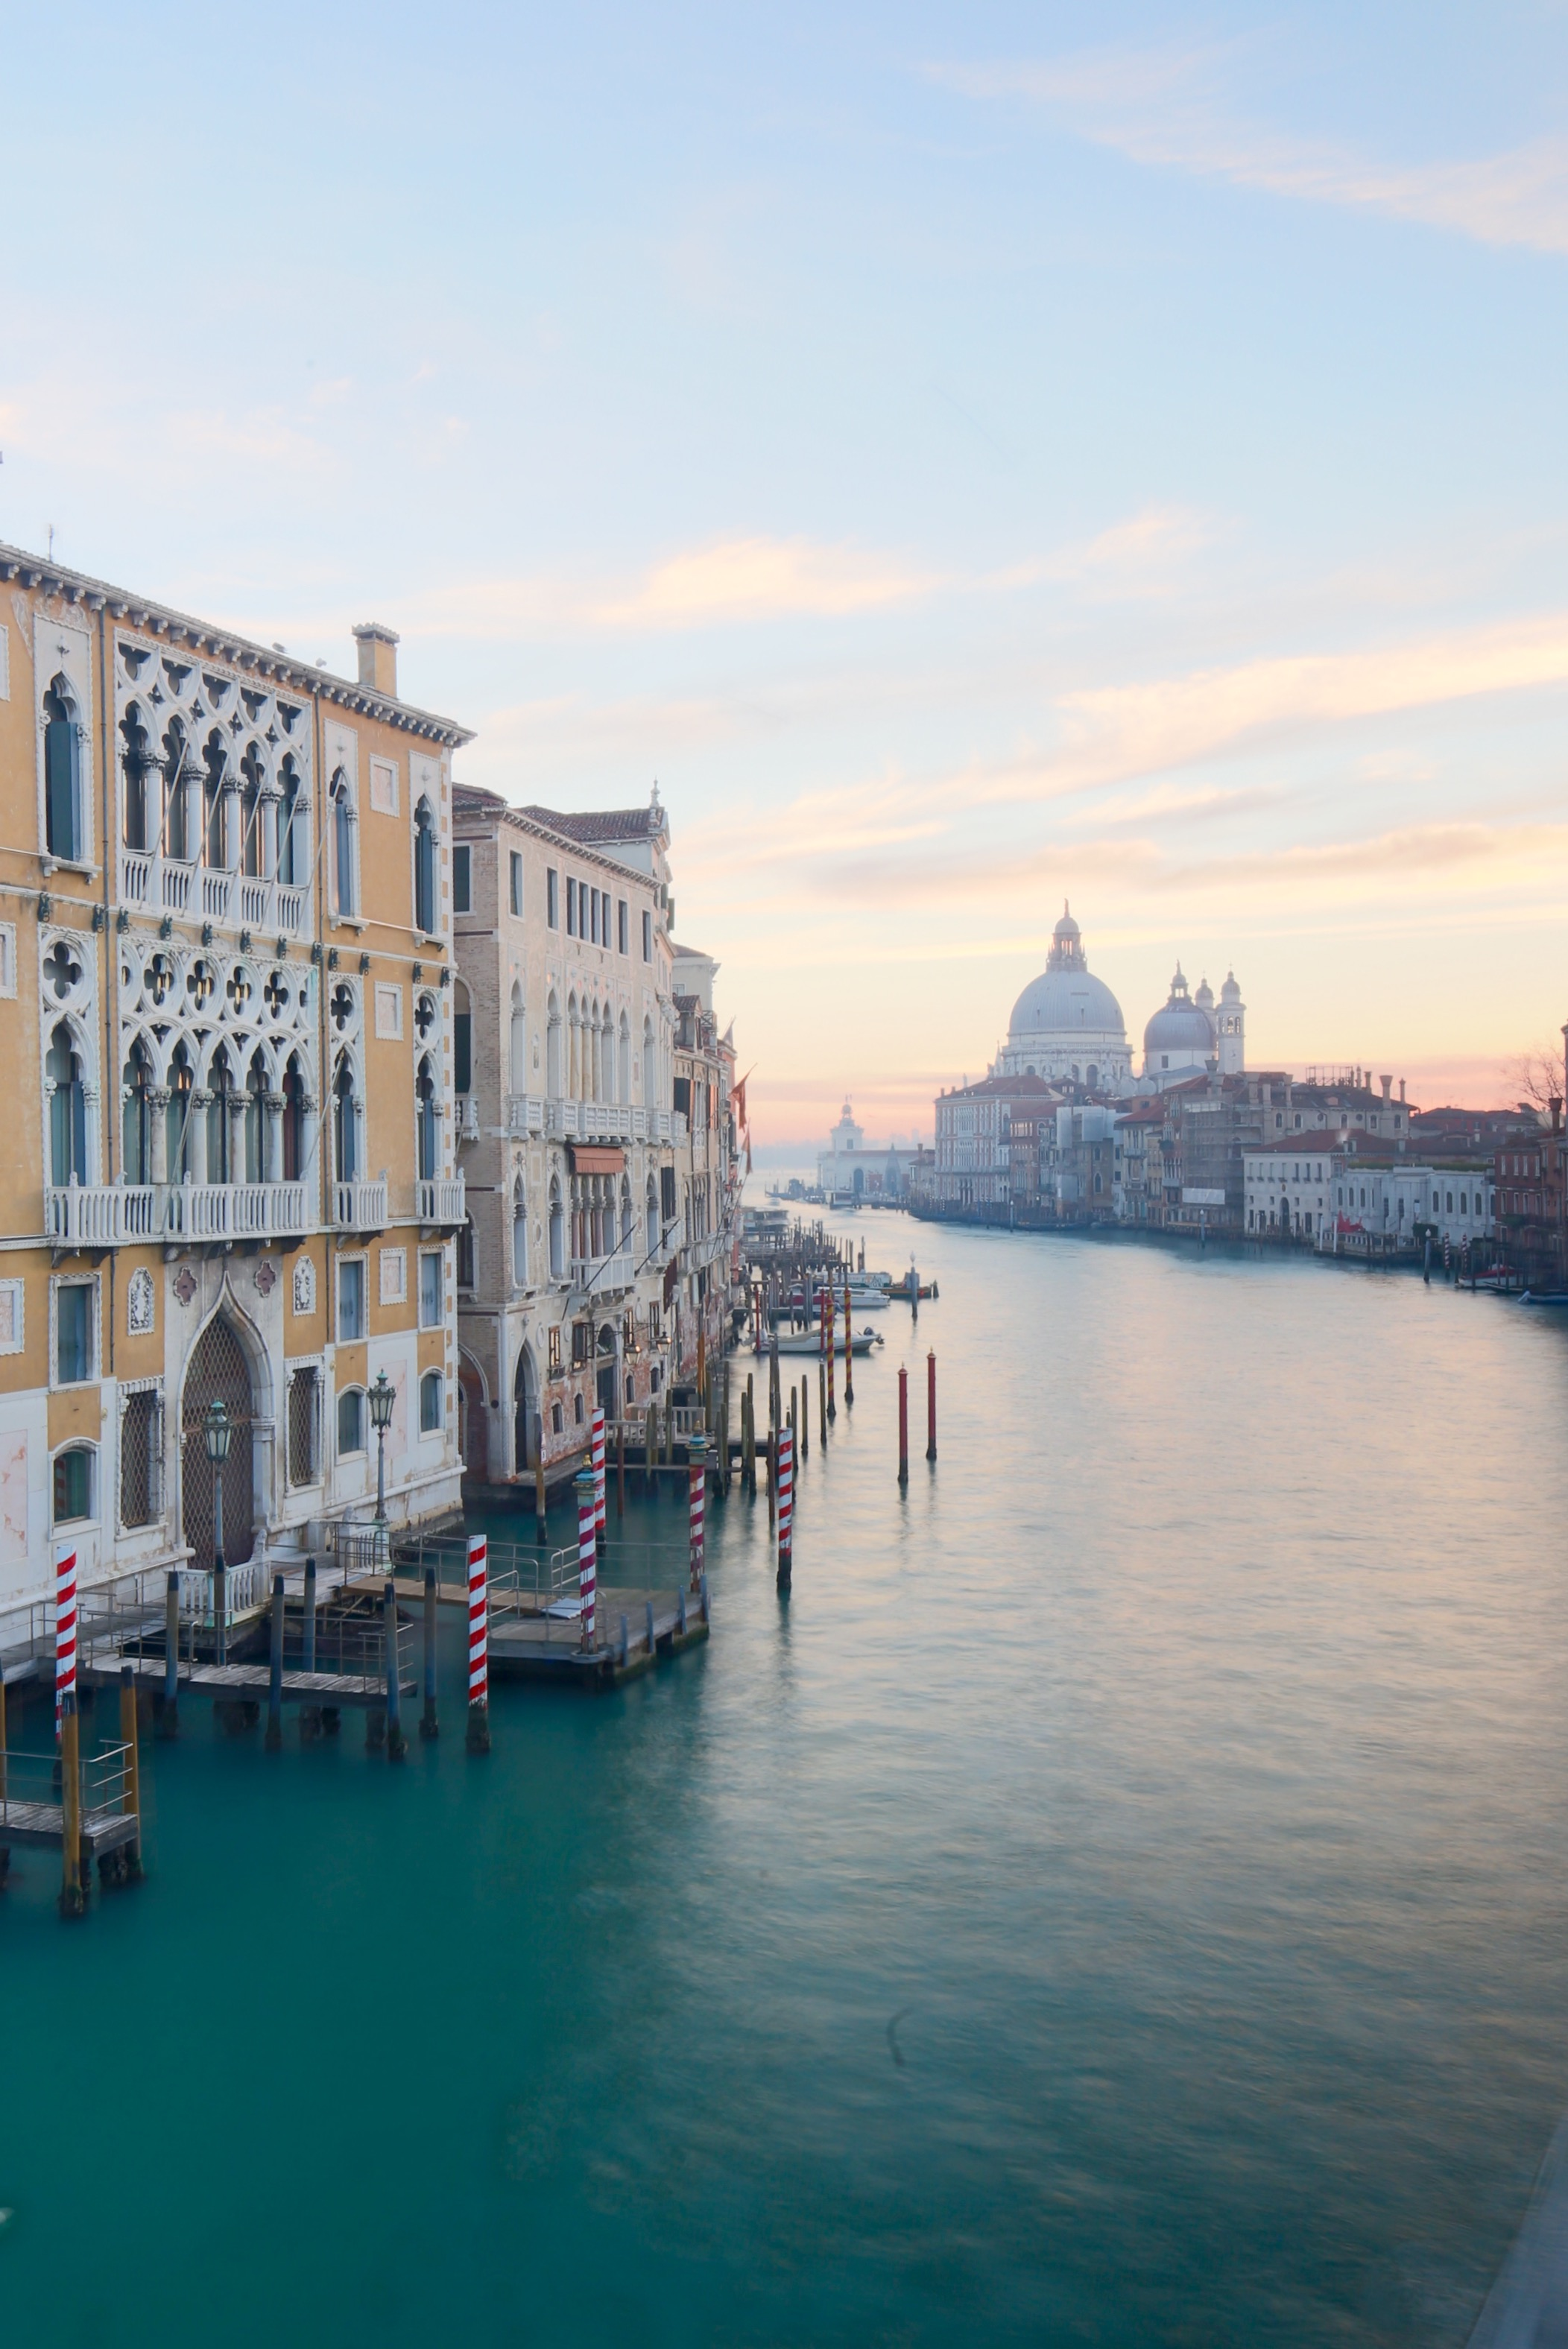 View from the Pont dell'Accademia in the morning in Venice - soft pastel light and blue water.